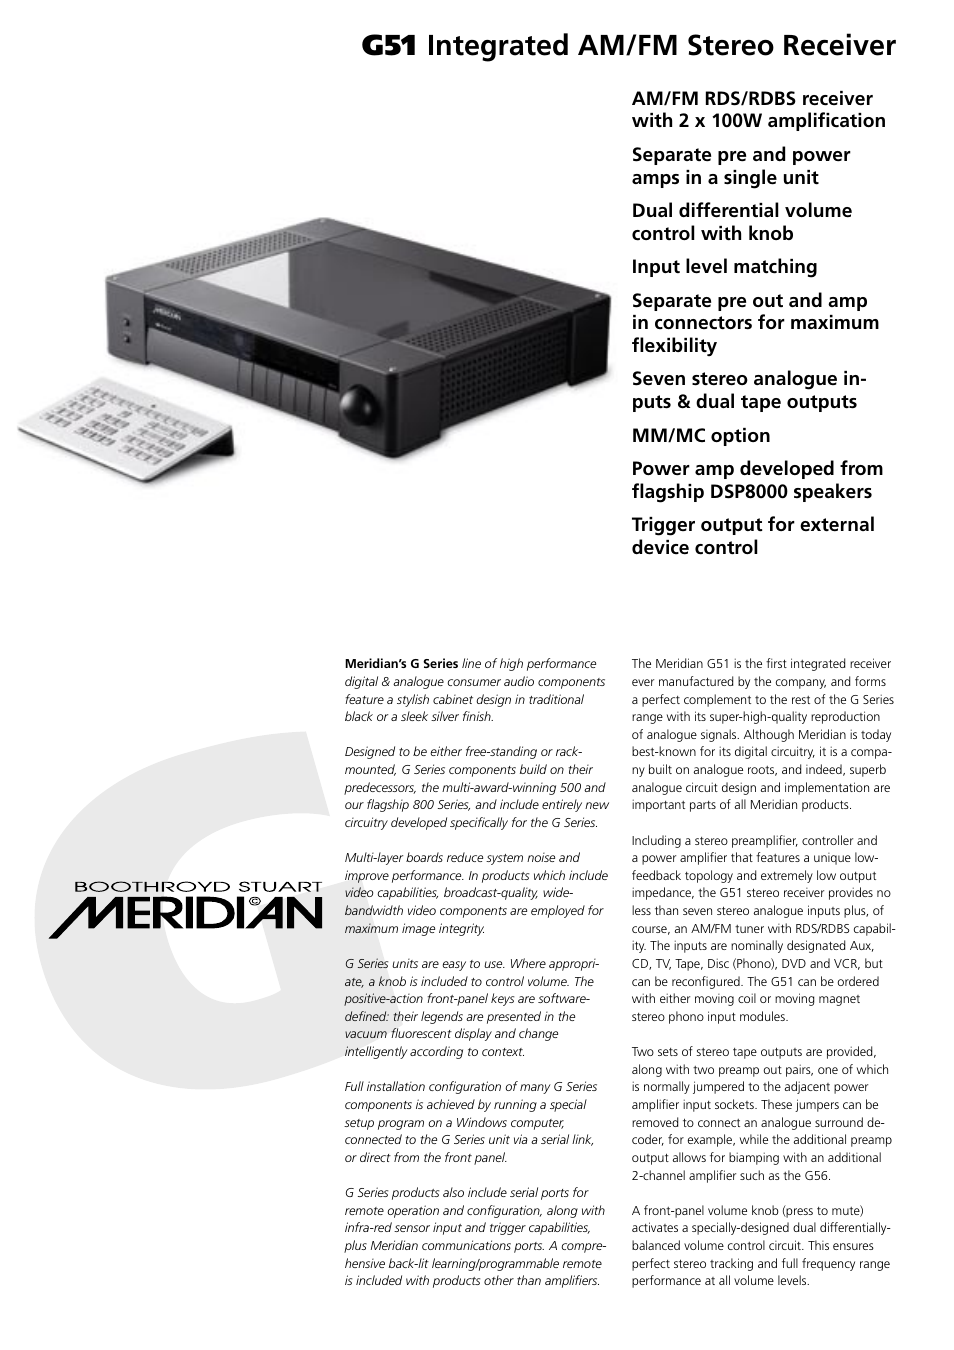 Meridian Audio G51 User Manual   2 pages